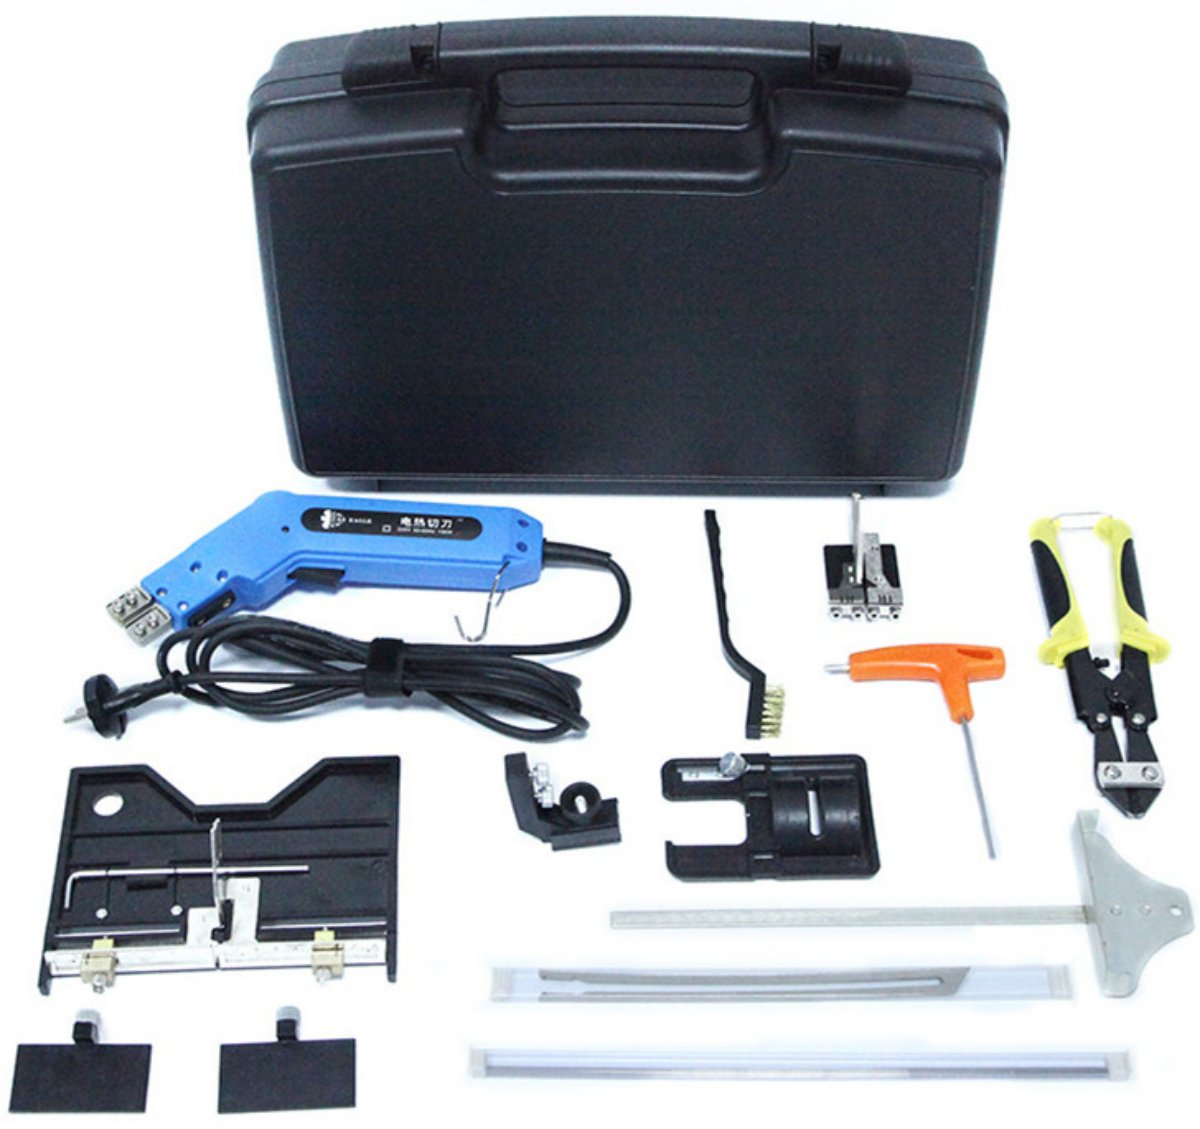 Handheld Hot Knife Wire Foam Heat Cutter Kit with Blades & Accessories 150W,110V by KS EAGLE